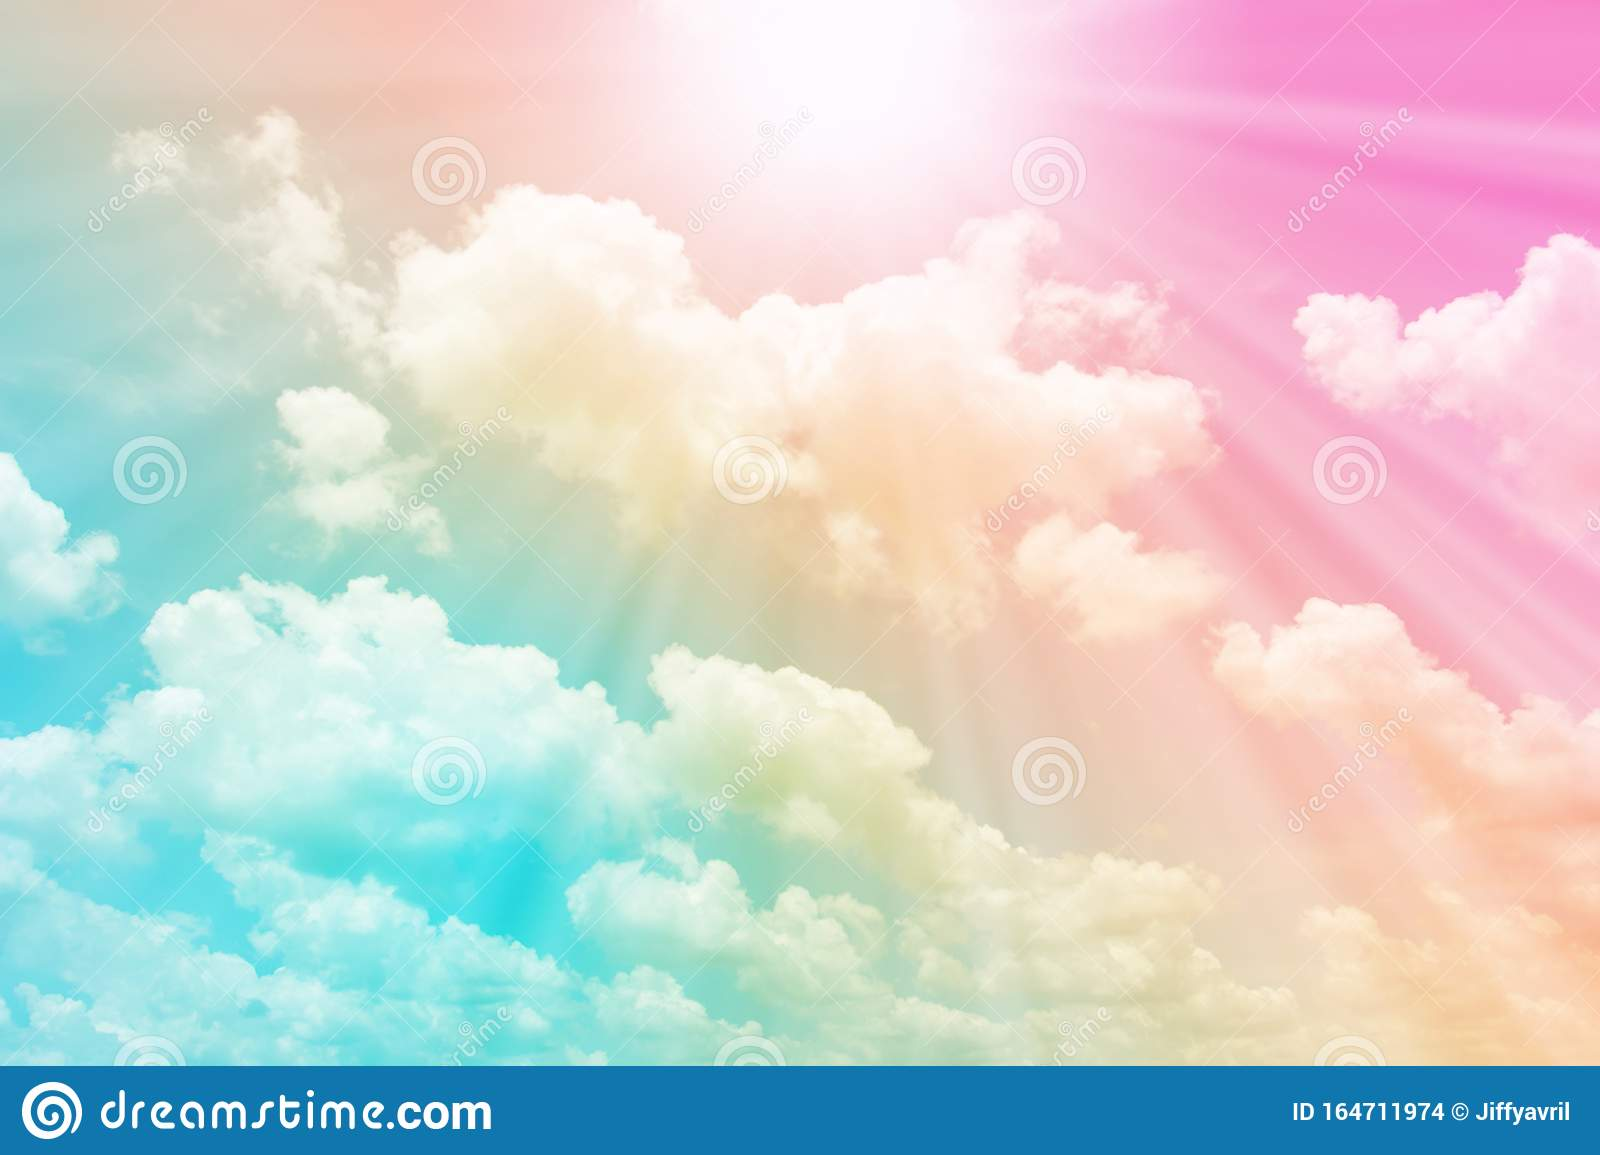 37 538 Pastel Sky Background Photos Free Royalty Free Stock Photos From Dreamstime